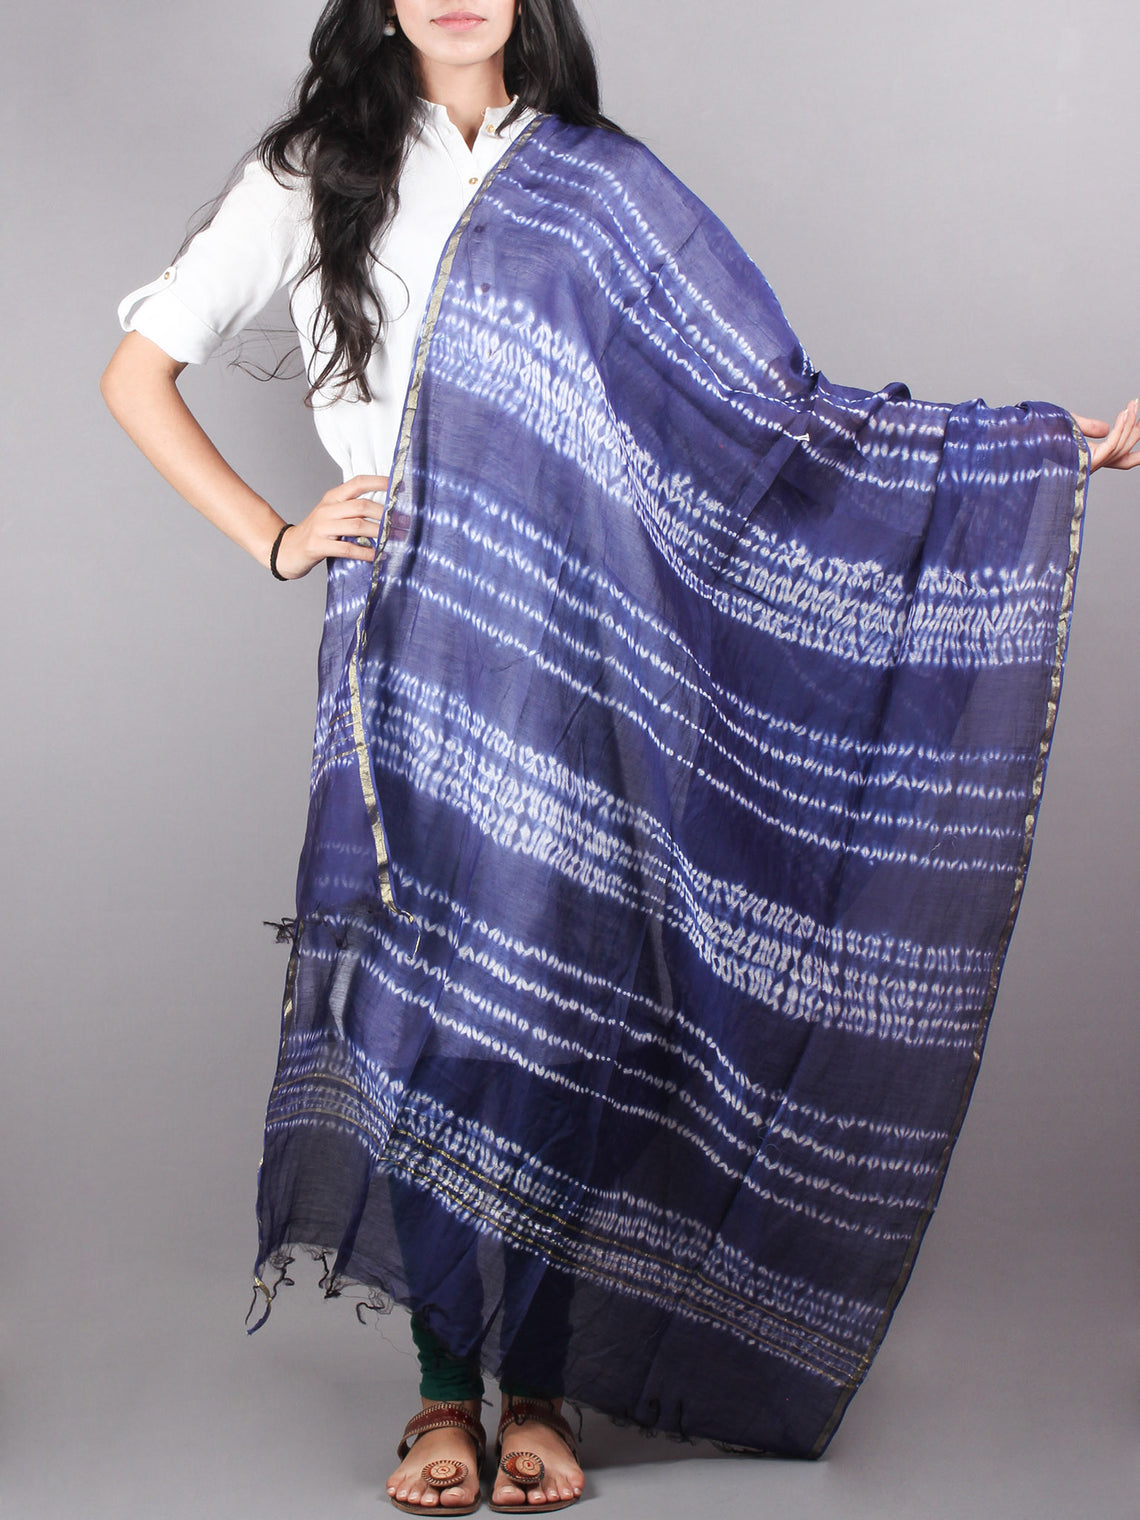 Indigo Shibori Hand Dyed in Natural Vegetable Colors Chanderi Dupatta - D0417061